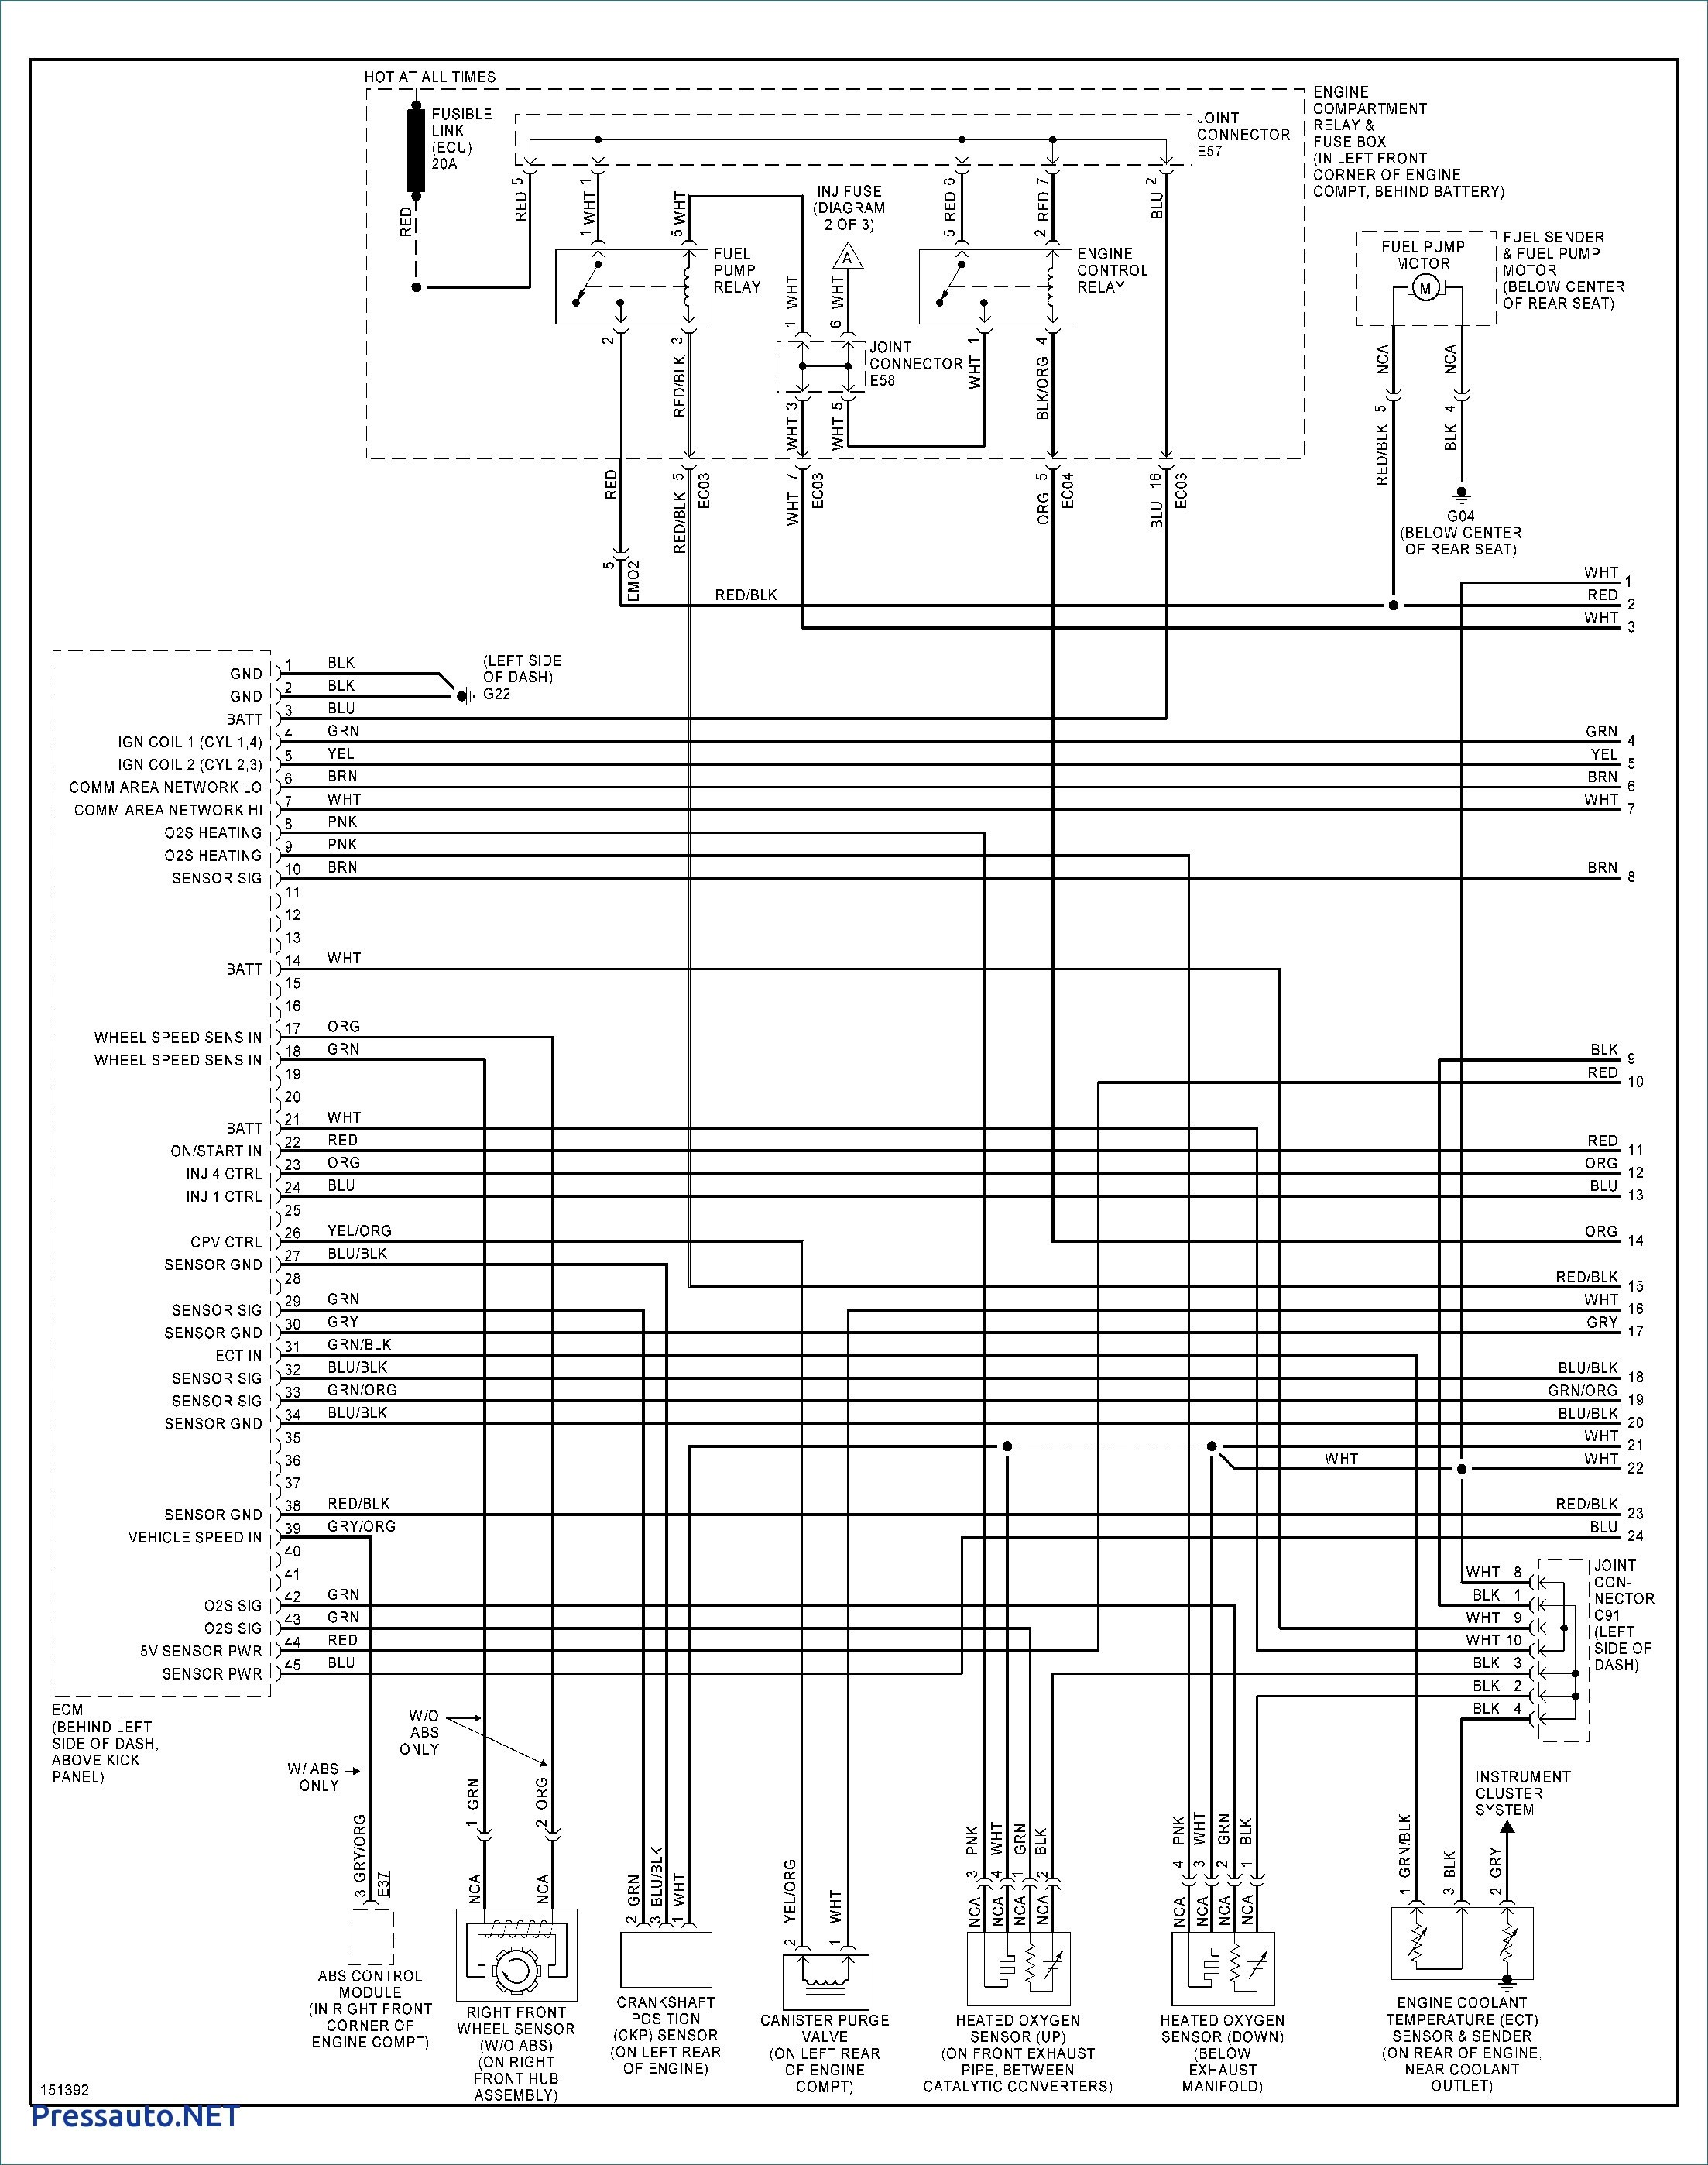 2007 Hyundai Santa Fe Engine Diagram Wiring Diagram for 2005 Hyundai Santa Fe 3 5 Schematics Wiring Of 2007 Hyundai Santa Fe Engine Diagram Wiring Diagram for 2005 Hyundai Santa Fe 3 5 Schematics Wiring